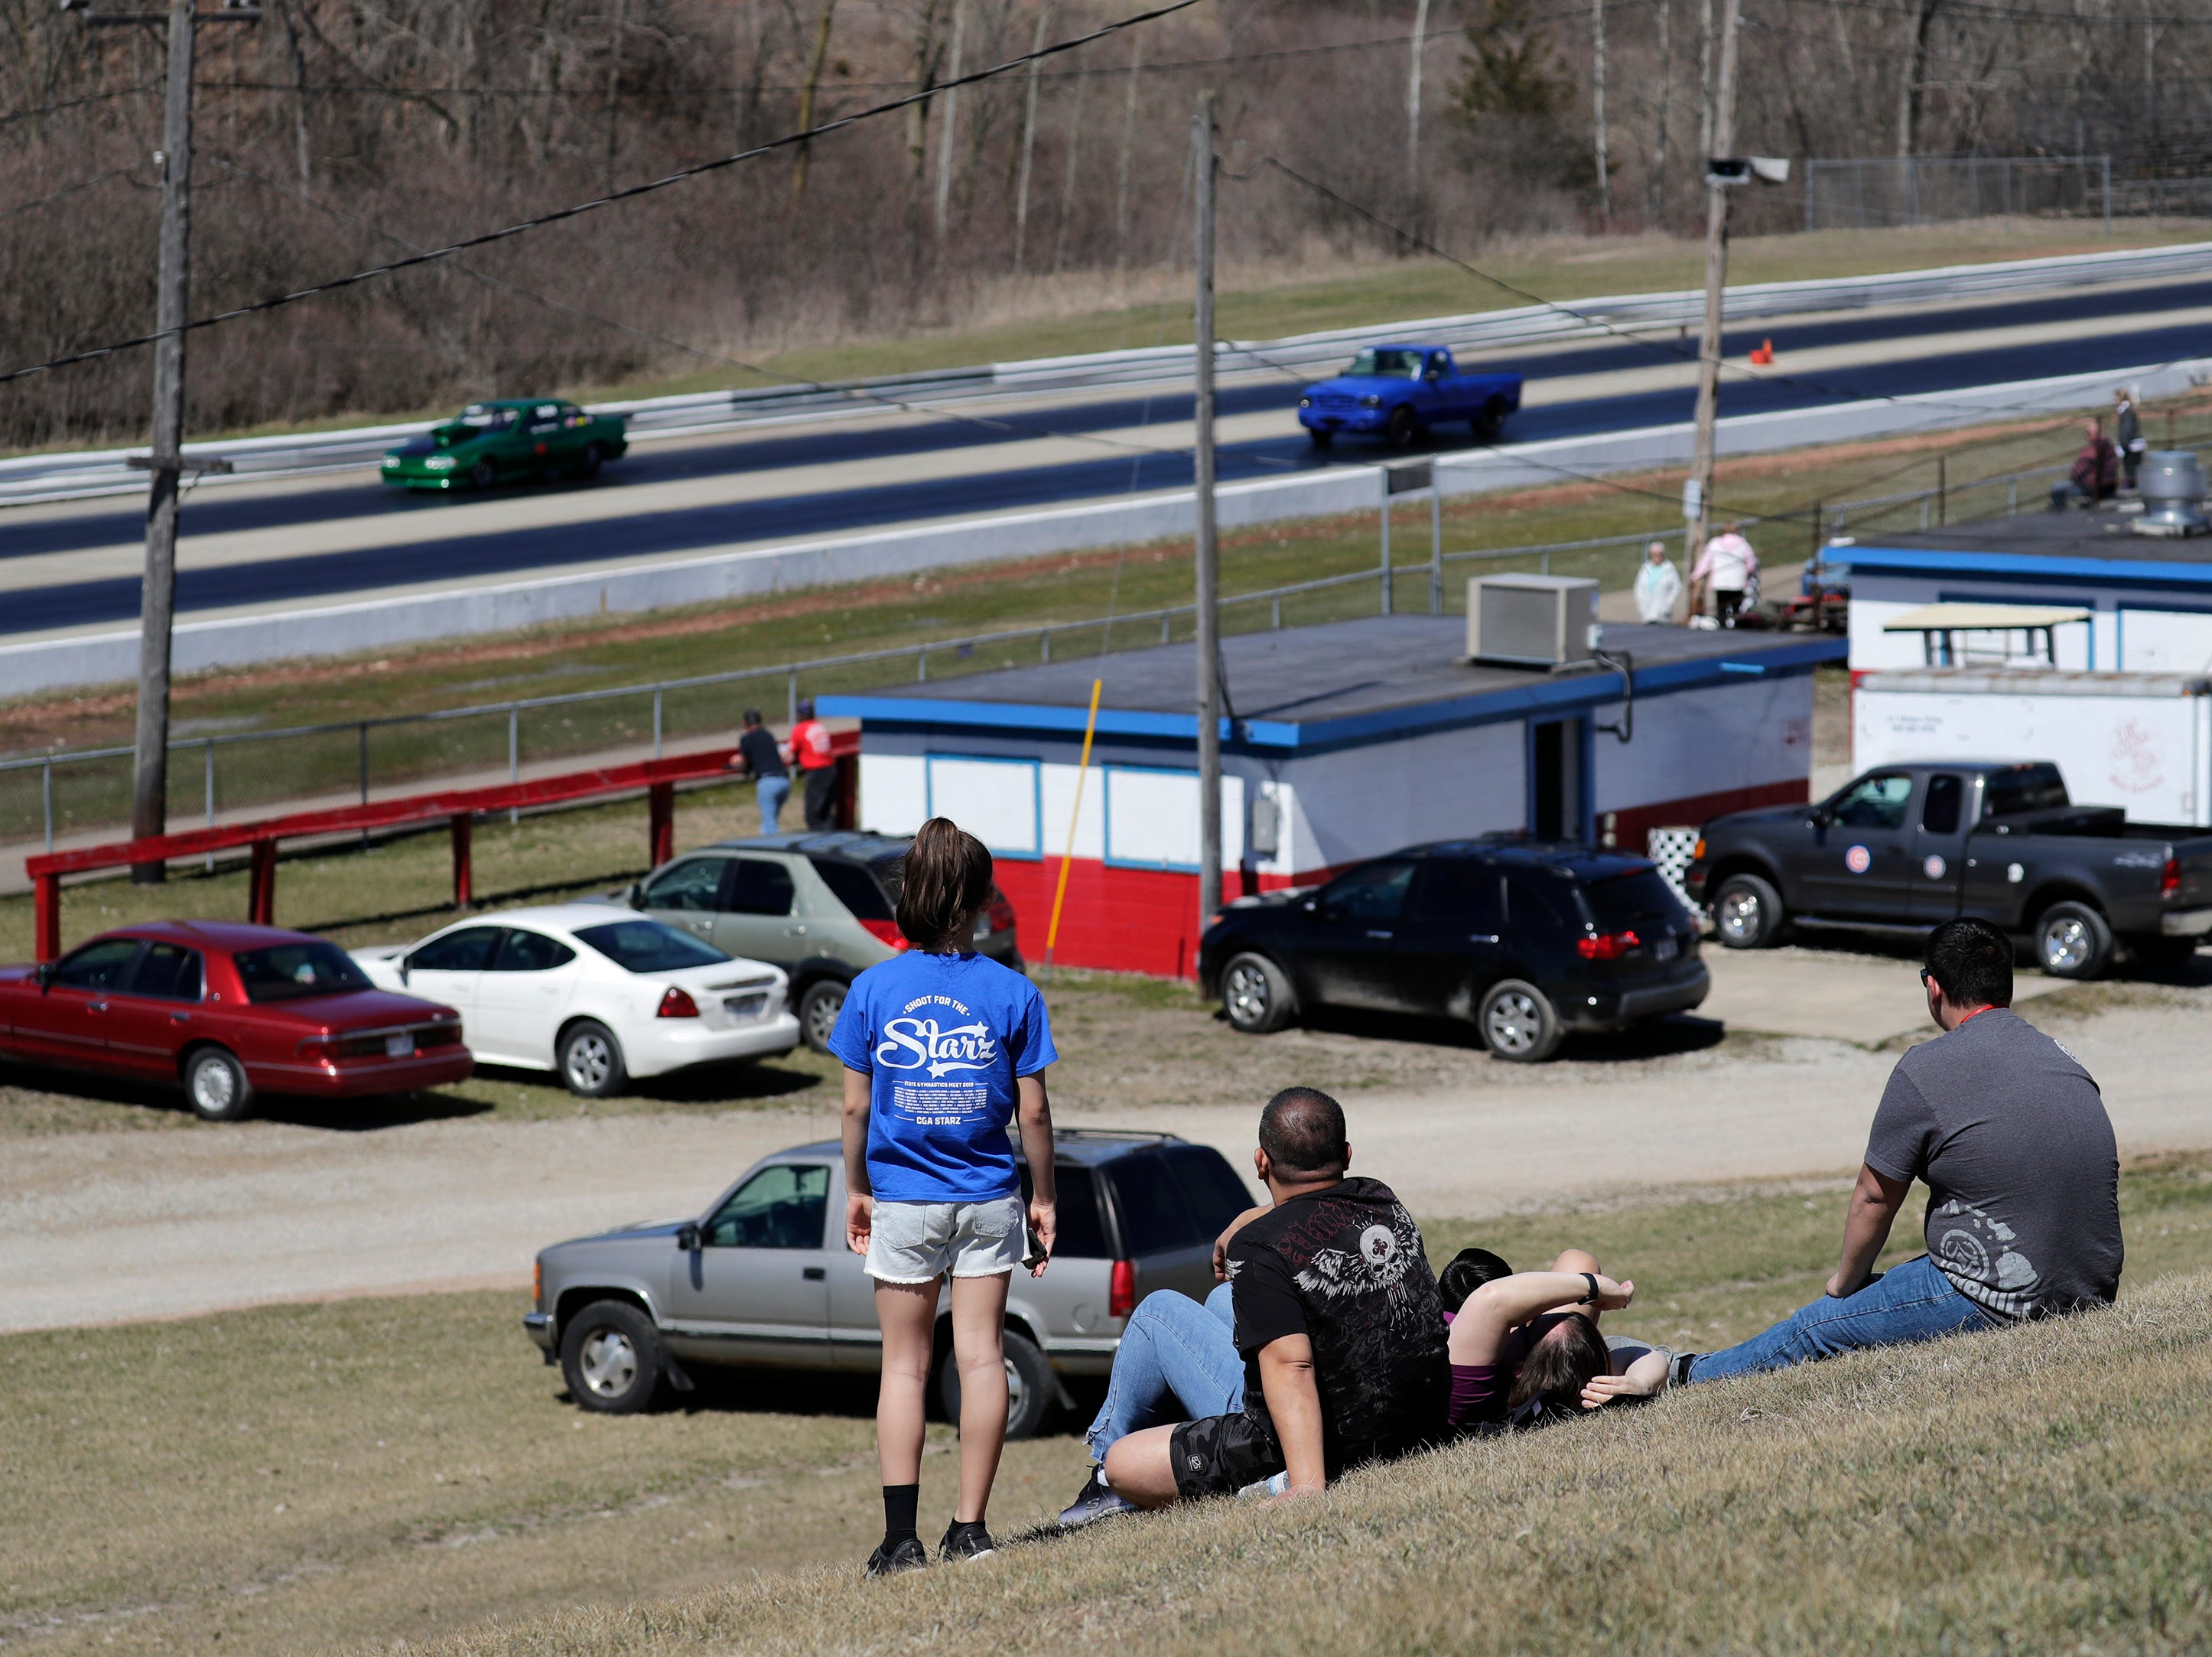 Fans watch from a distance during the Wisconsin International Raceway Strip Test & Tune event Saturday, April 20, 2019, in Kaukauna, Wis. Drivers spent the day getting safety inspections, tune ups and test runs on the track for the upcoming season.